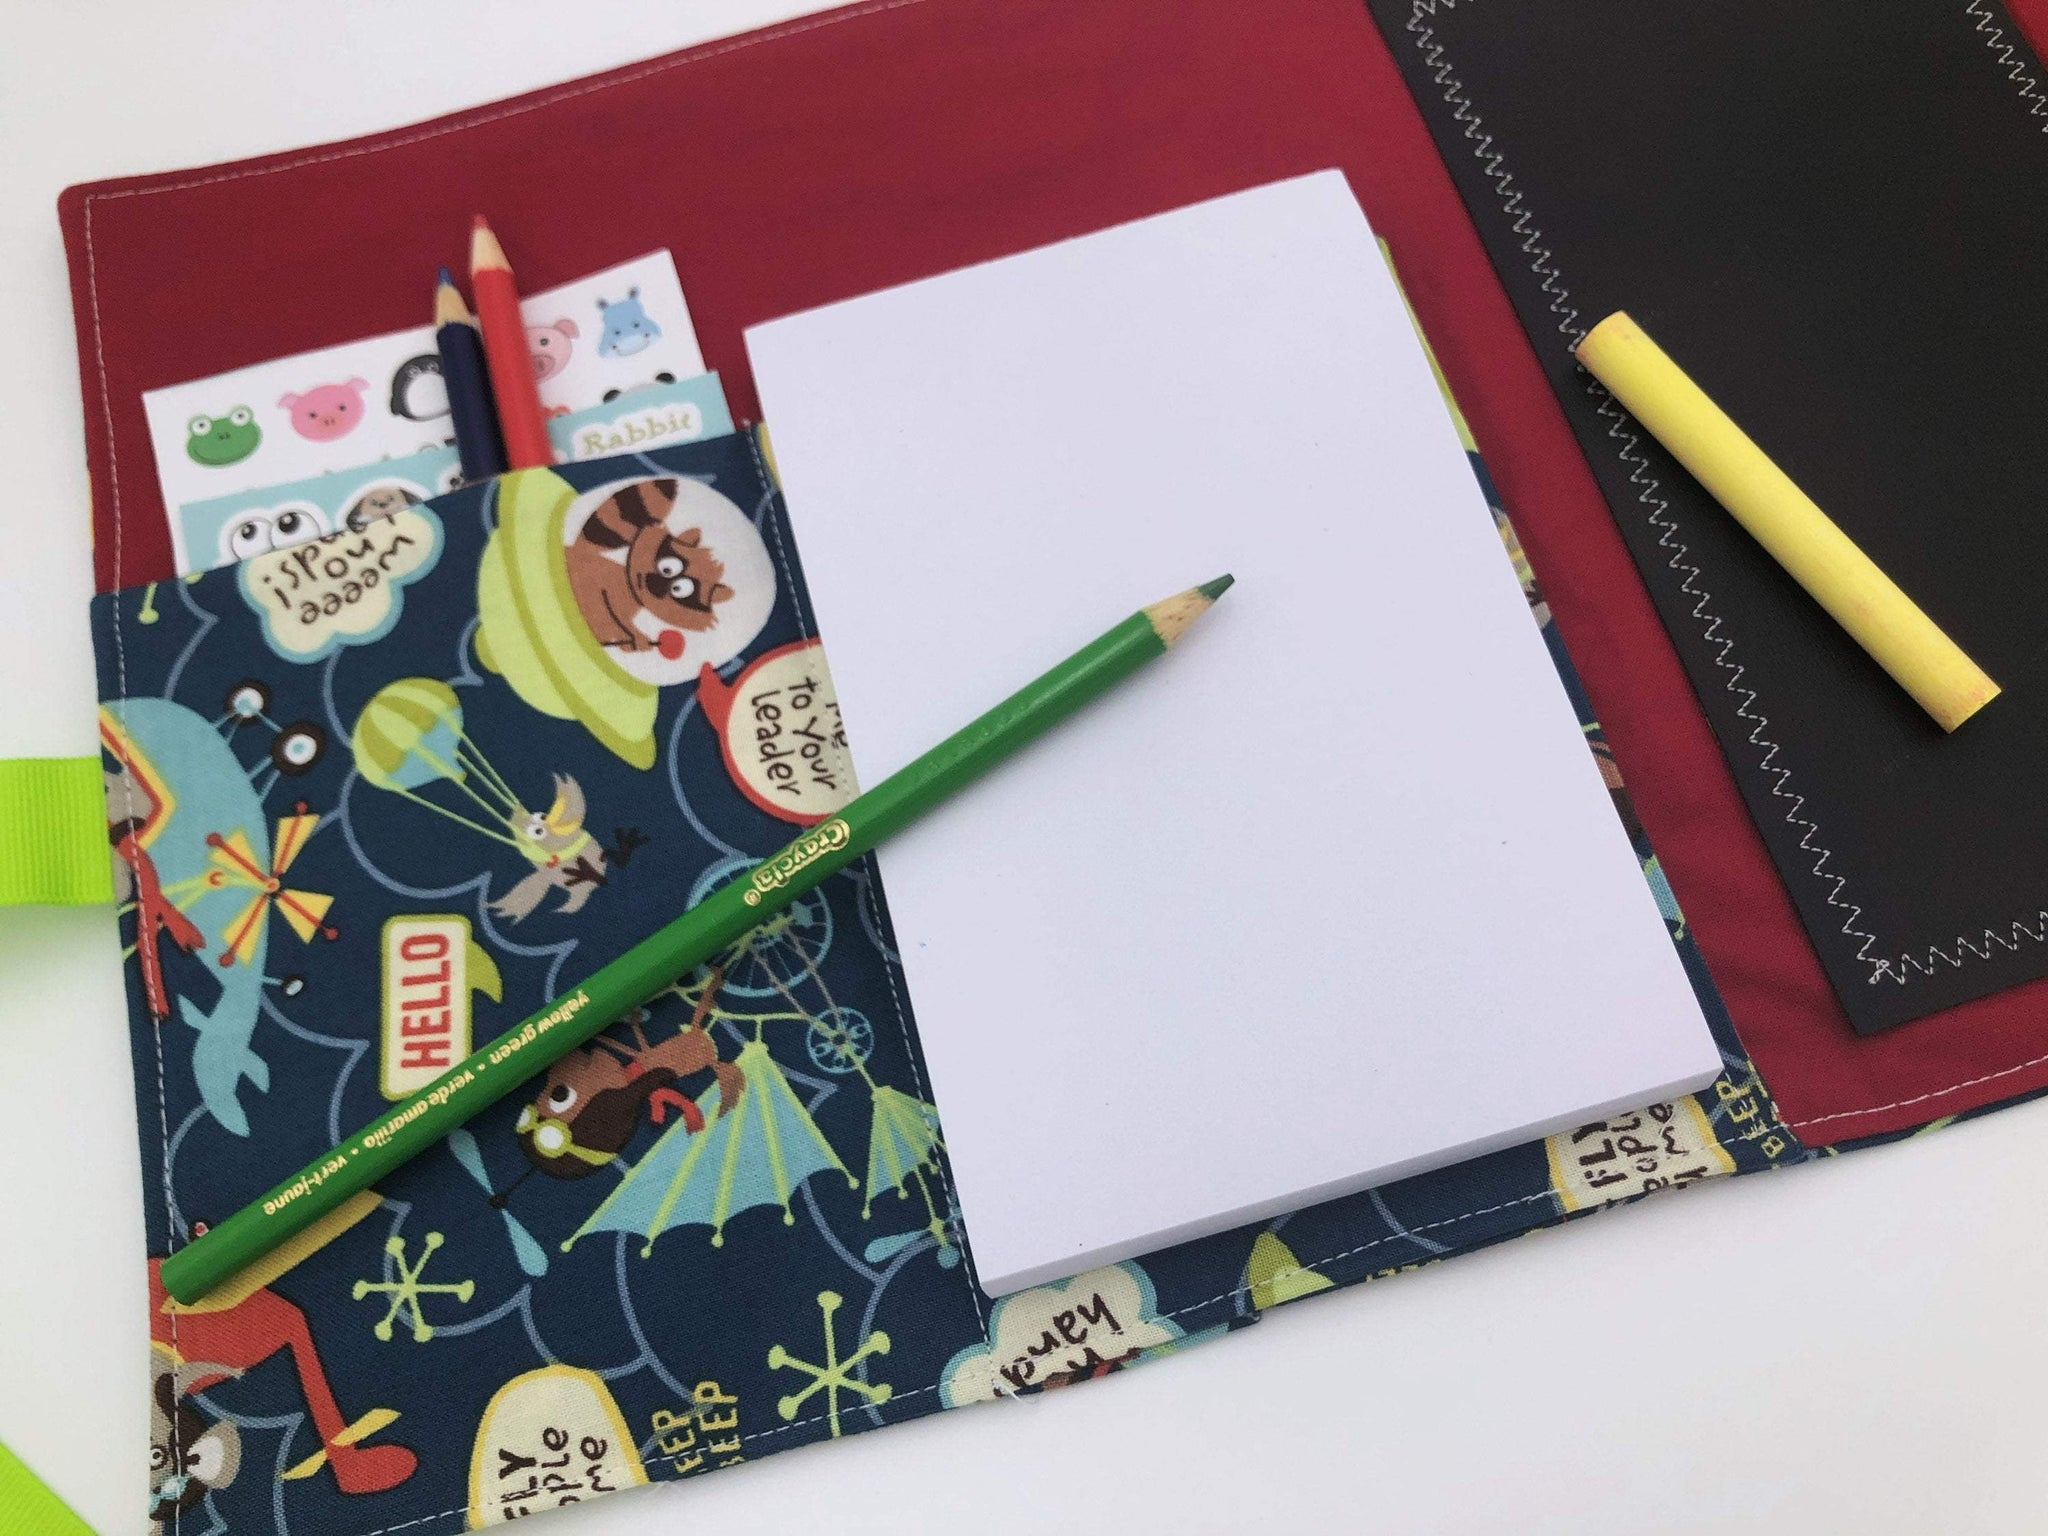 Activity Wallet, Travel Crayon Roll, Chalkboard Mat, Crayon Case, Gift for Kids, Pencil Case, Creative Toy, Stickers - Little Flyers